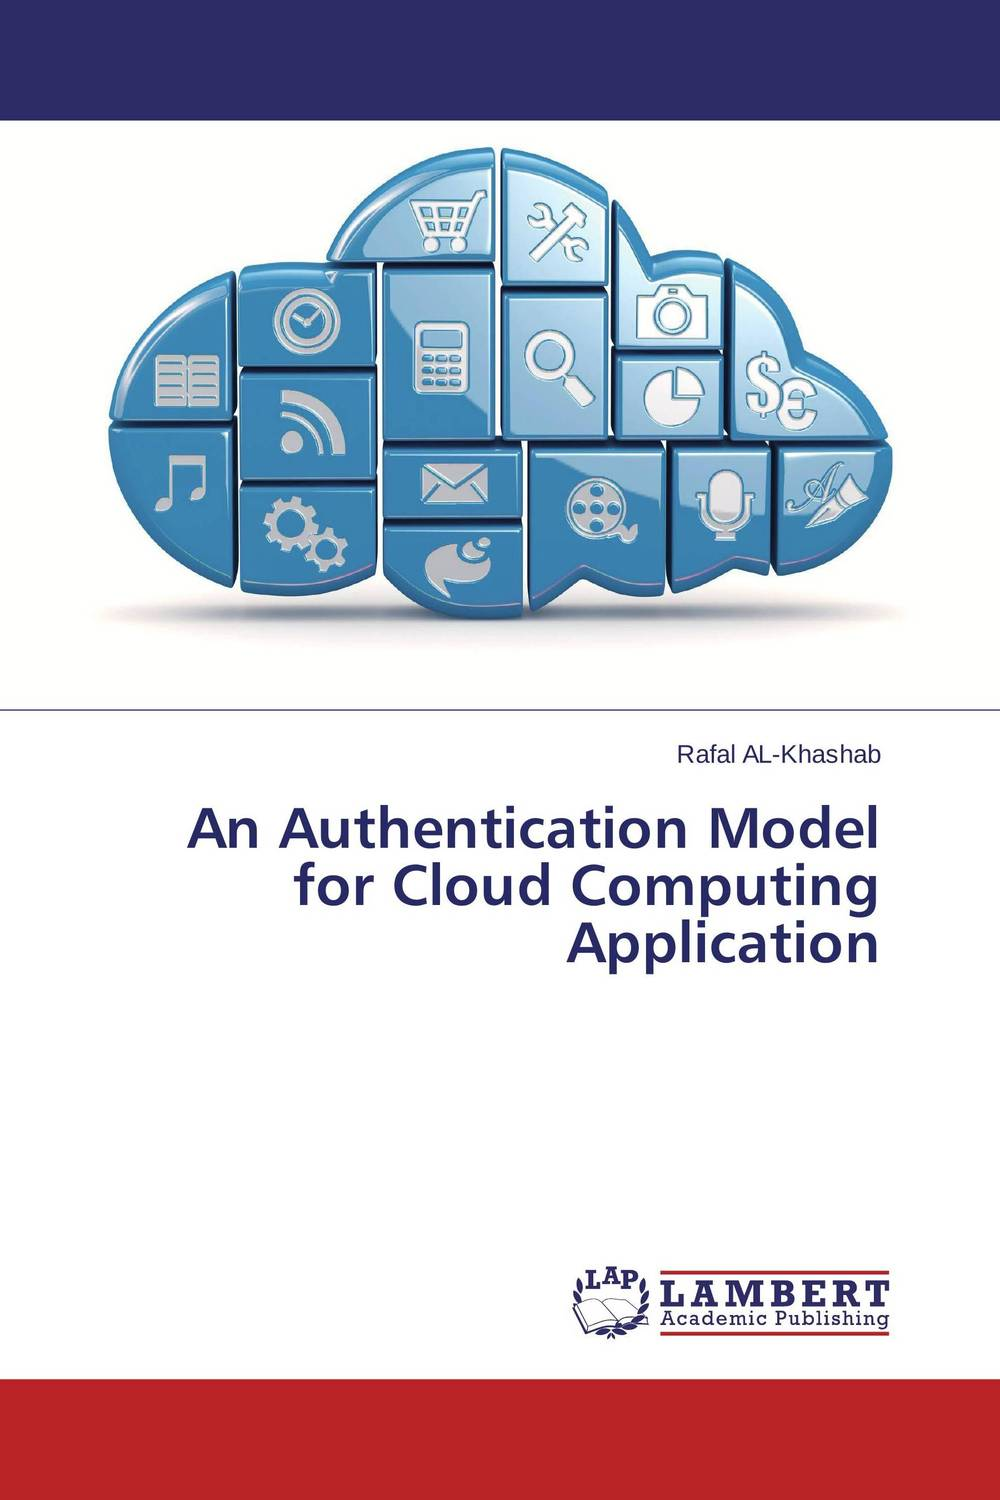 An Authentication Model for Cloud Computing Application cloud computing